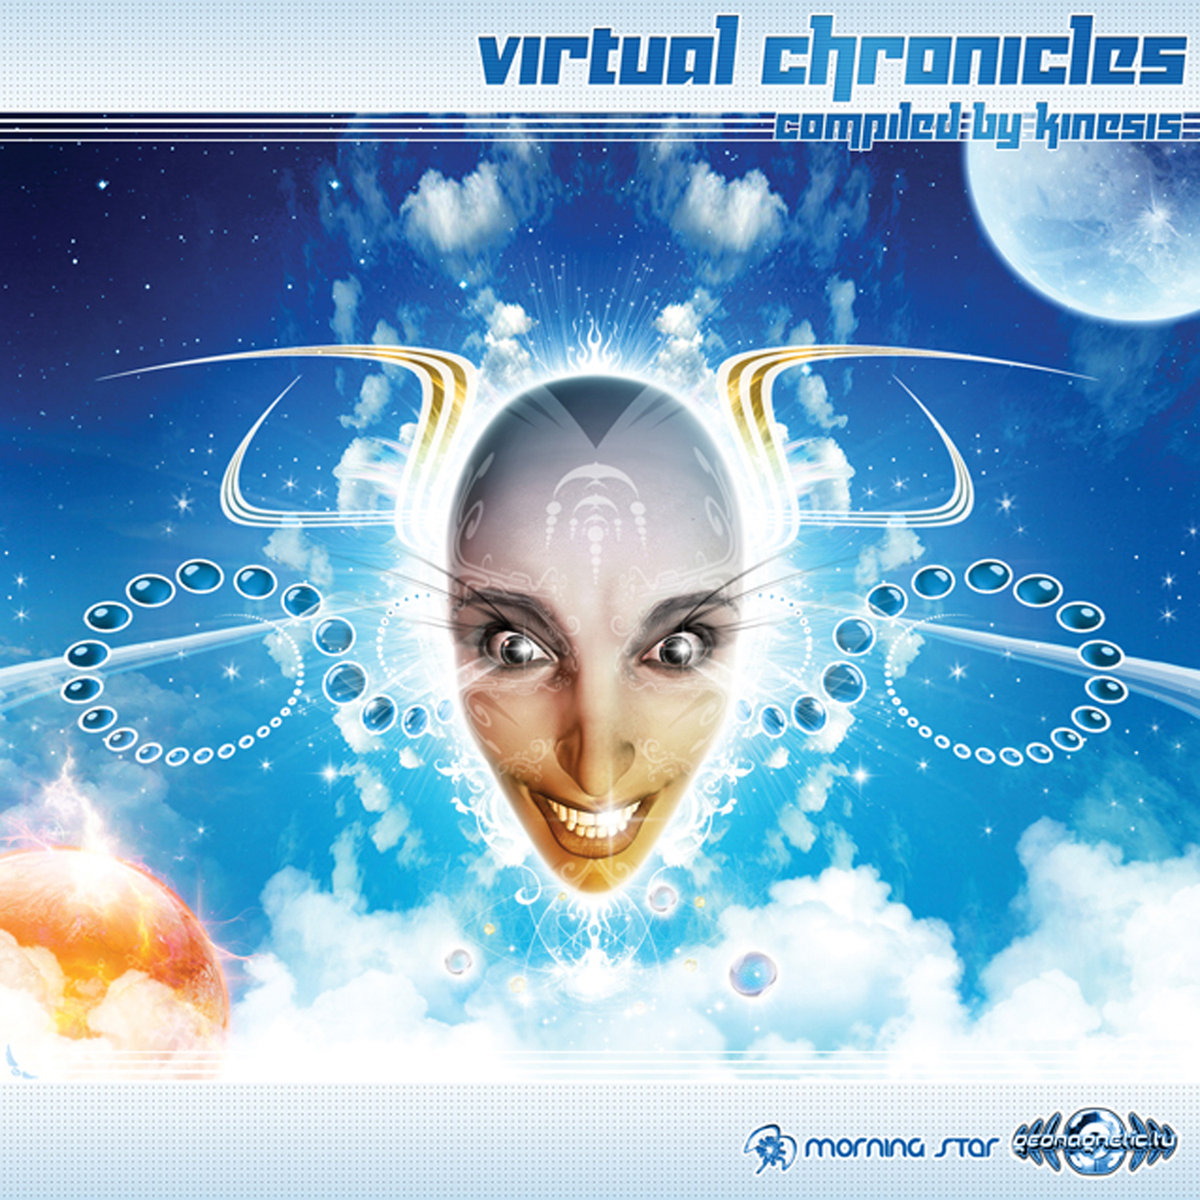 Crying Freemen - I Have A Dream @ 'Various Artists - Virtual Chronicles (Compiled by Kinesis)' album (electronic, goa)